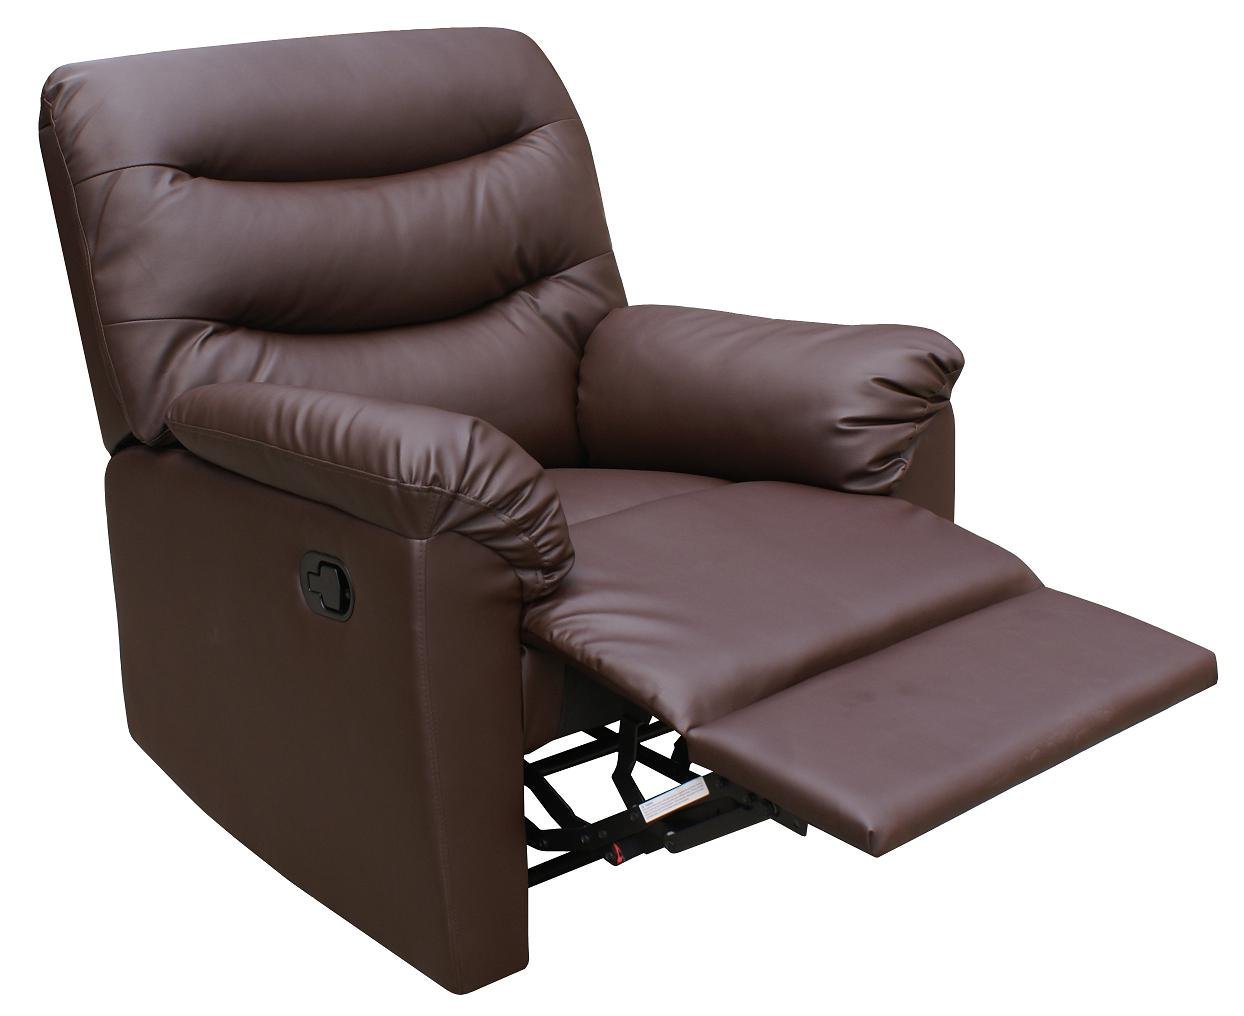 Birlea Regency Faux Leather Recliner Chair, Brown: Amazon.co.uk: Kitchen U0026  Home